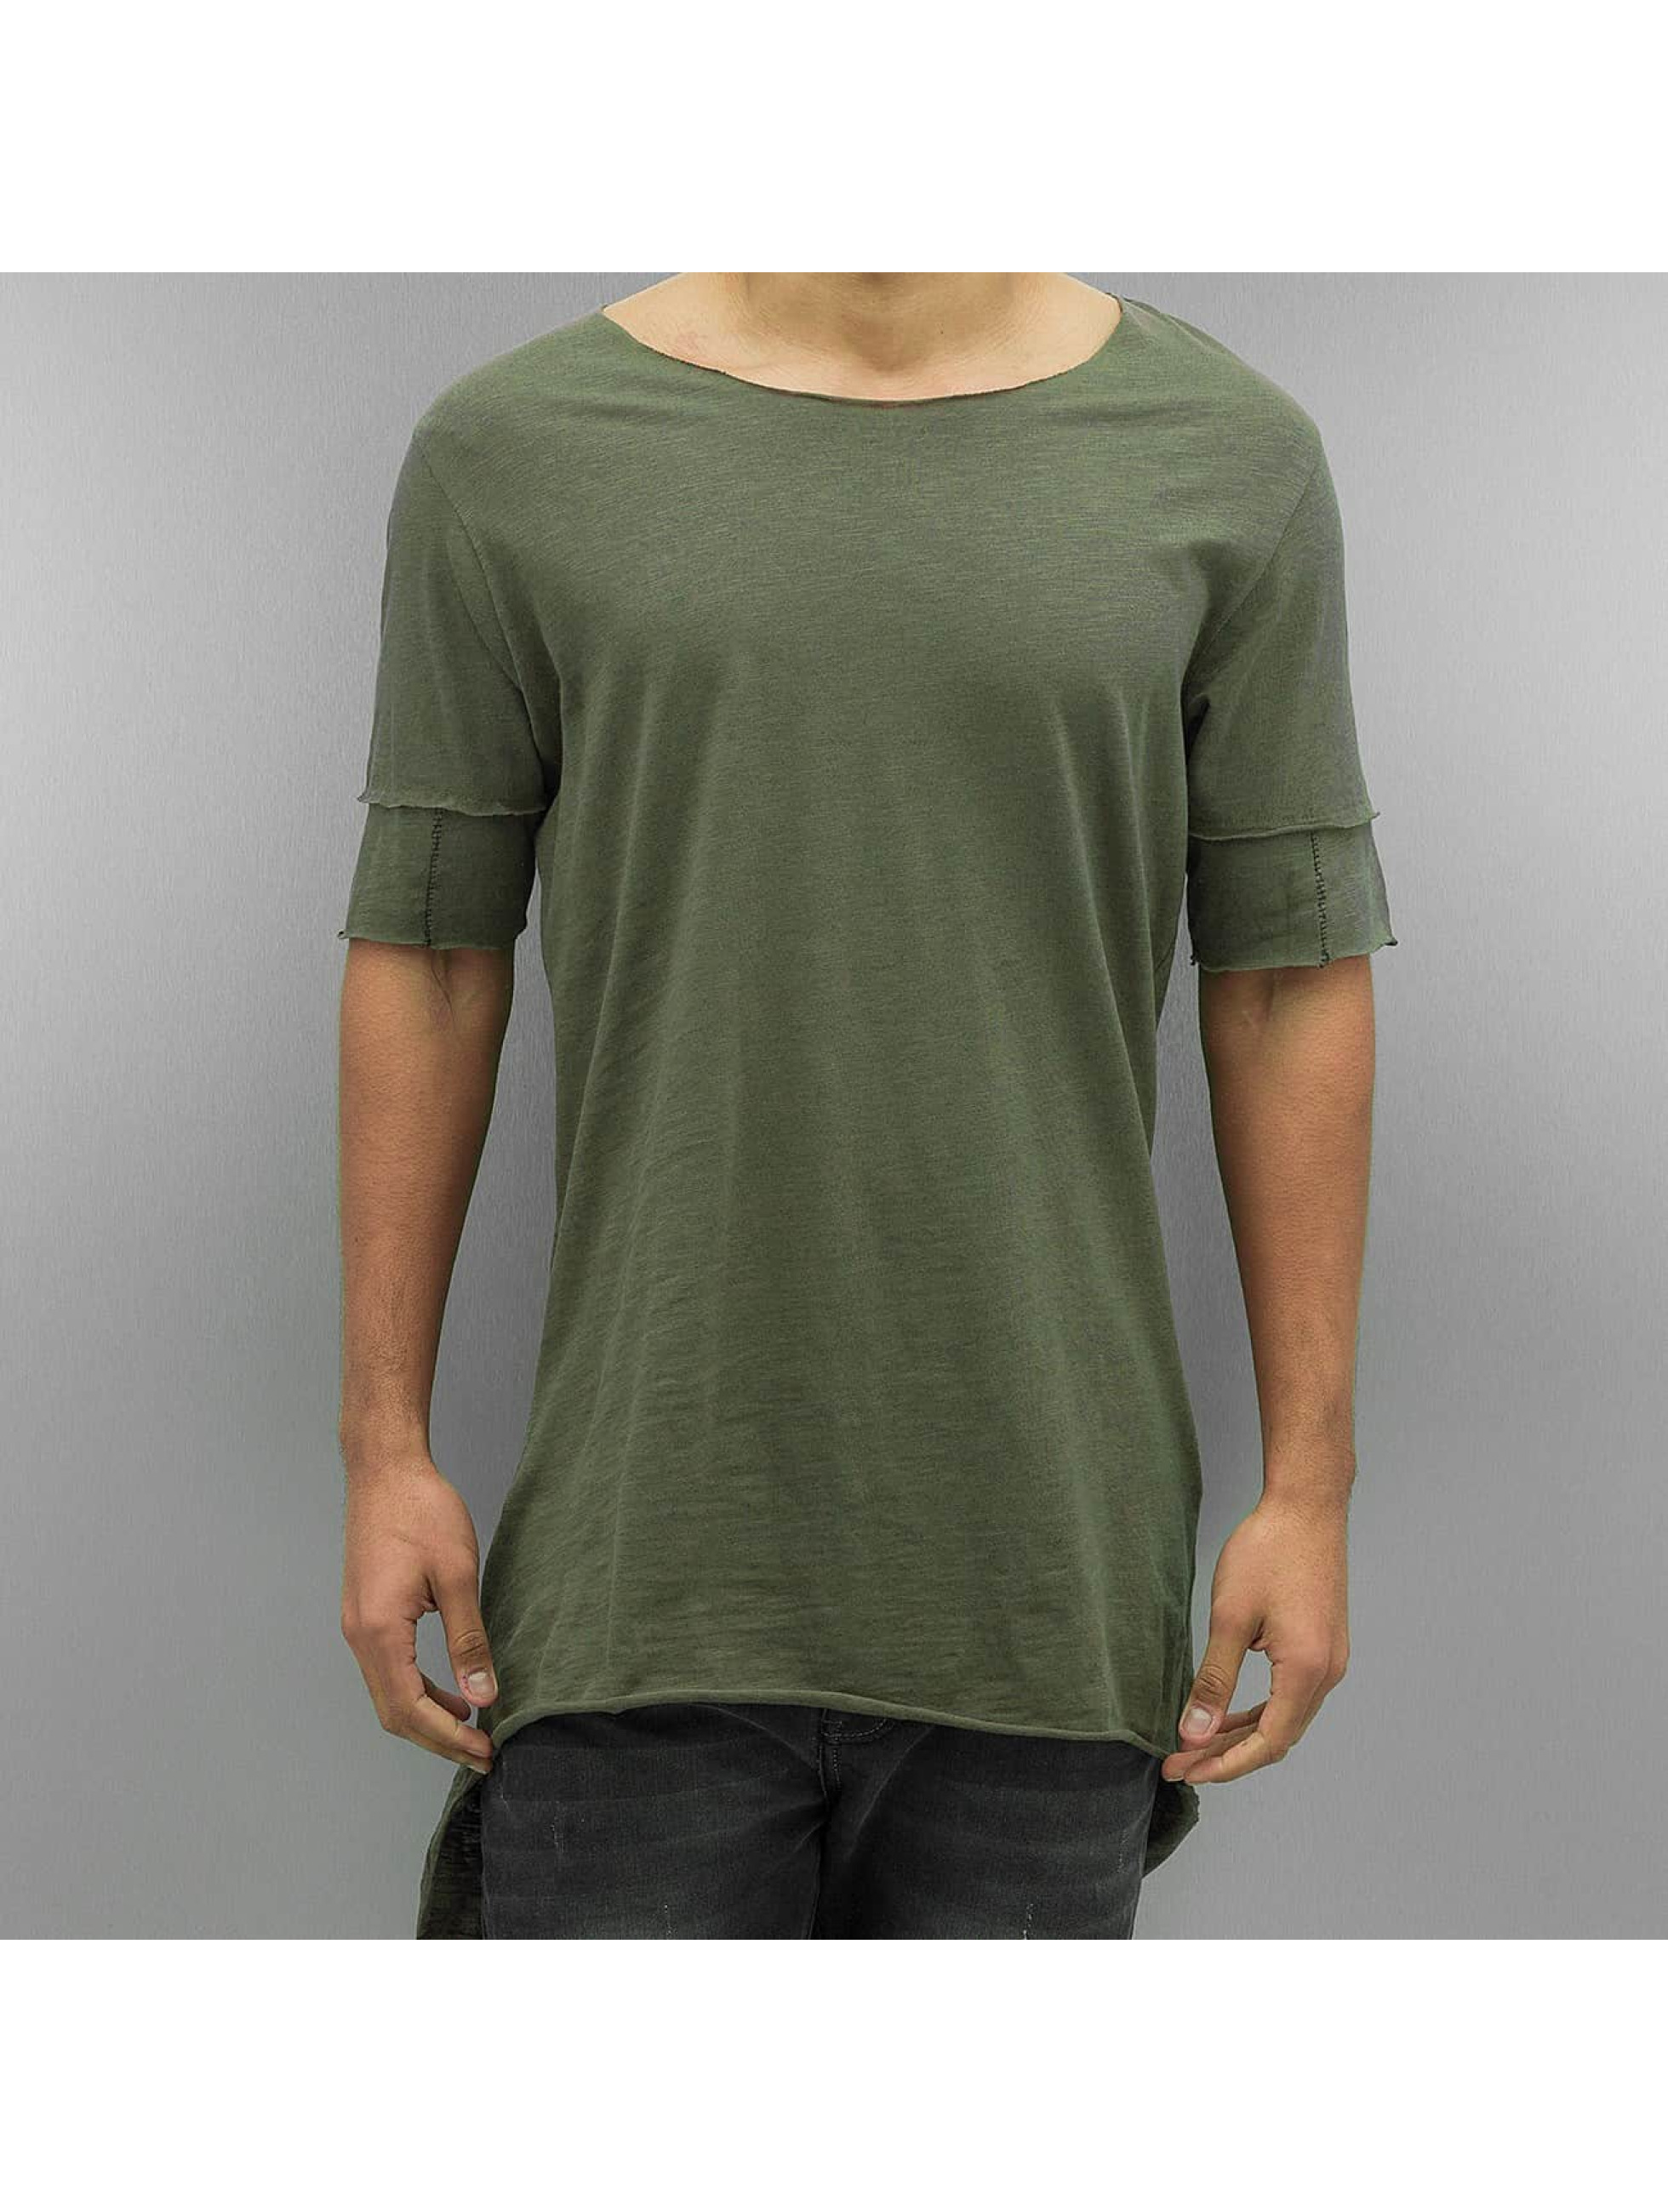 2Y T-Shirt Wichita khaki